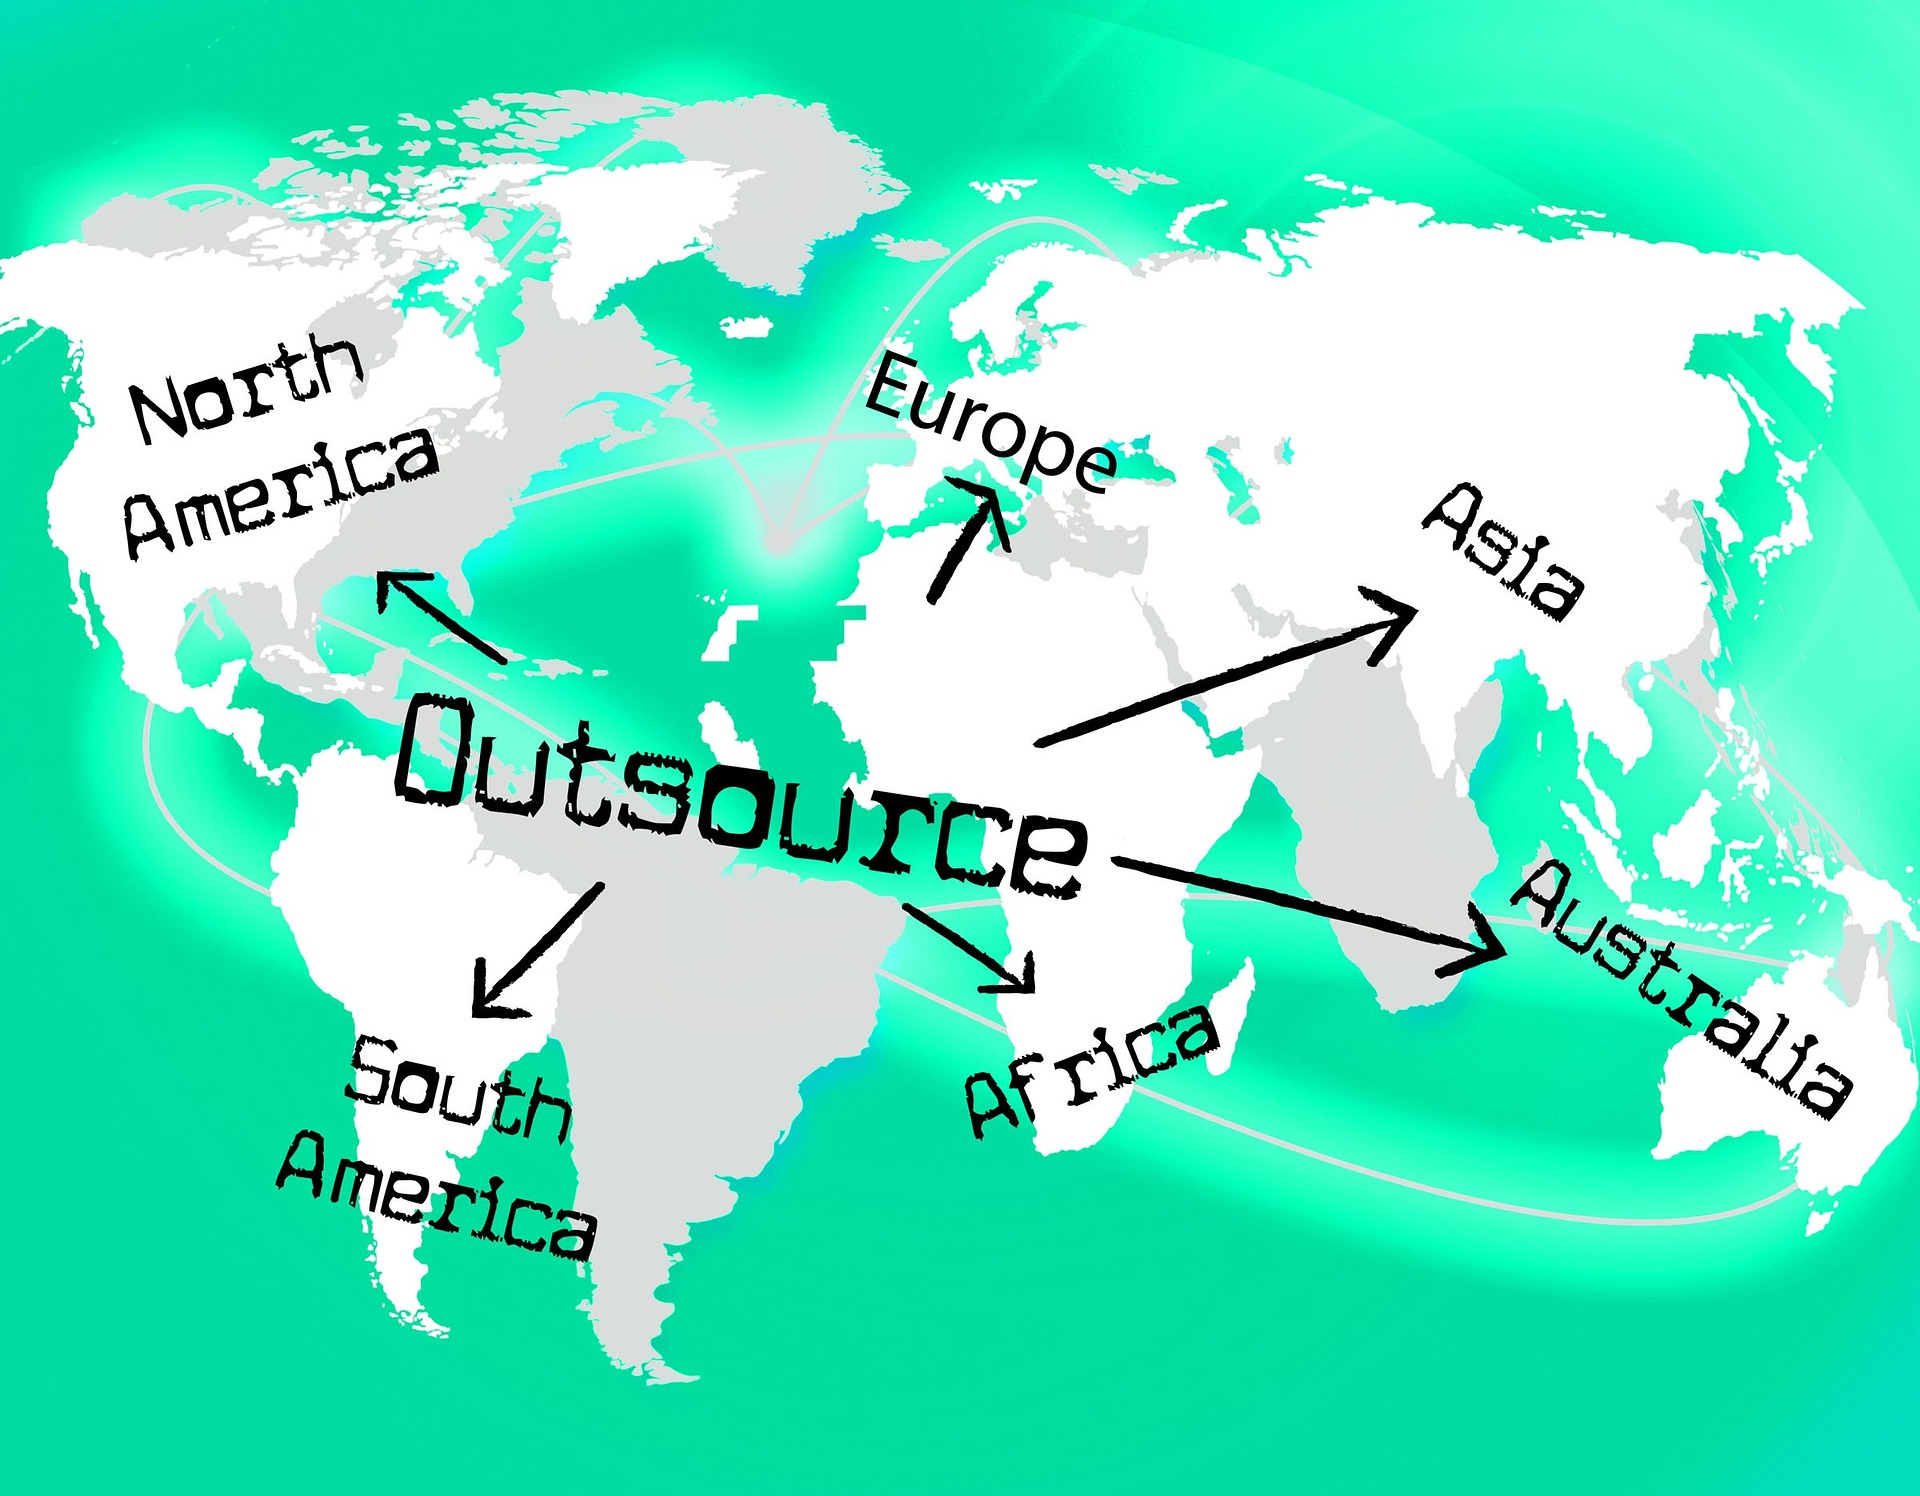 outsource-1345109_1920